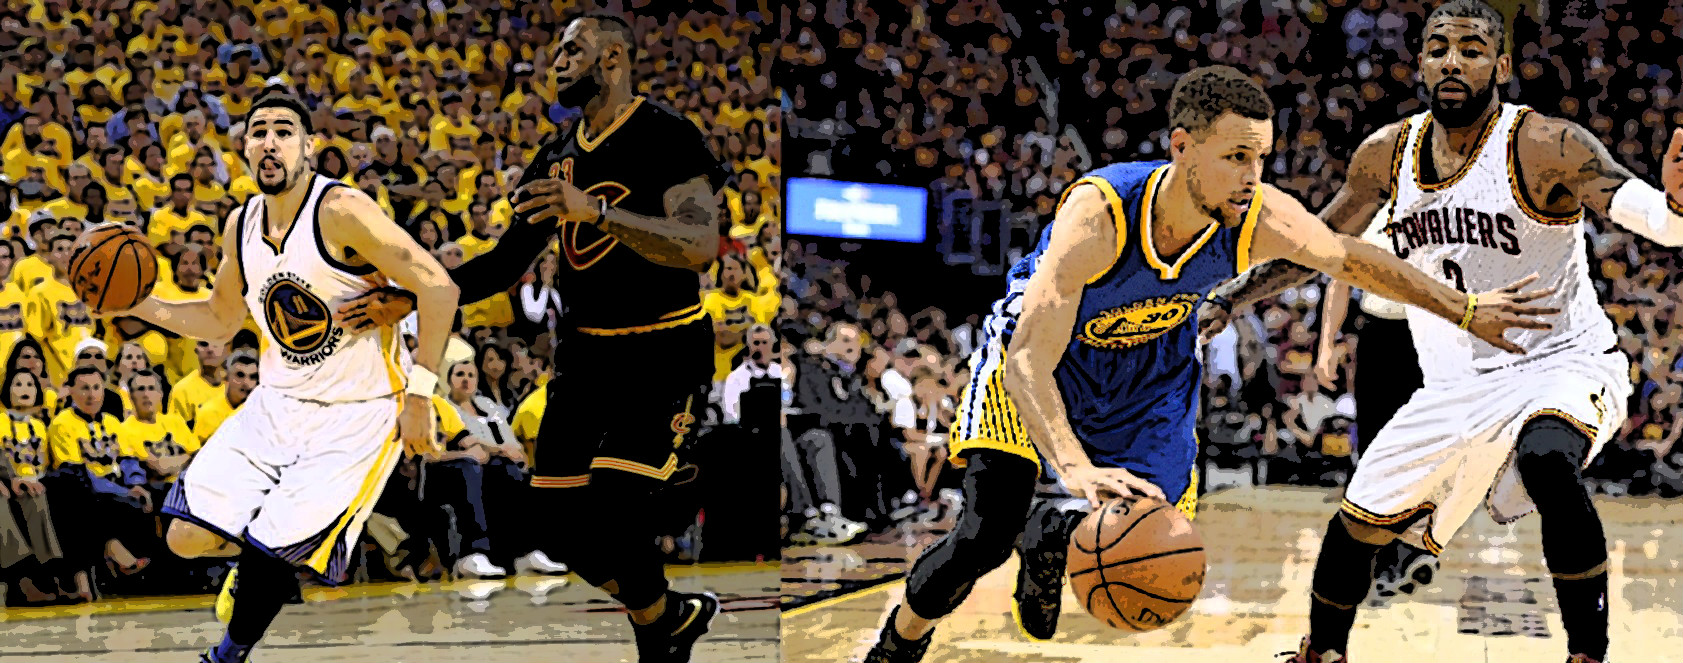 It's on! History in the making - Cavs vs Warriors - Game 7